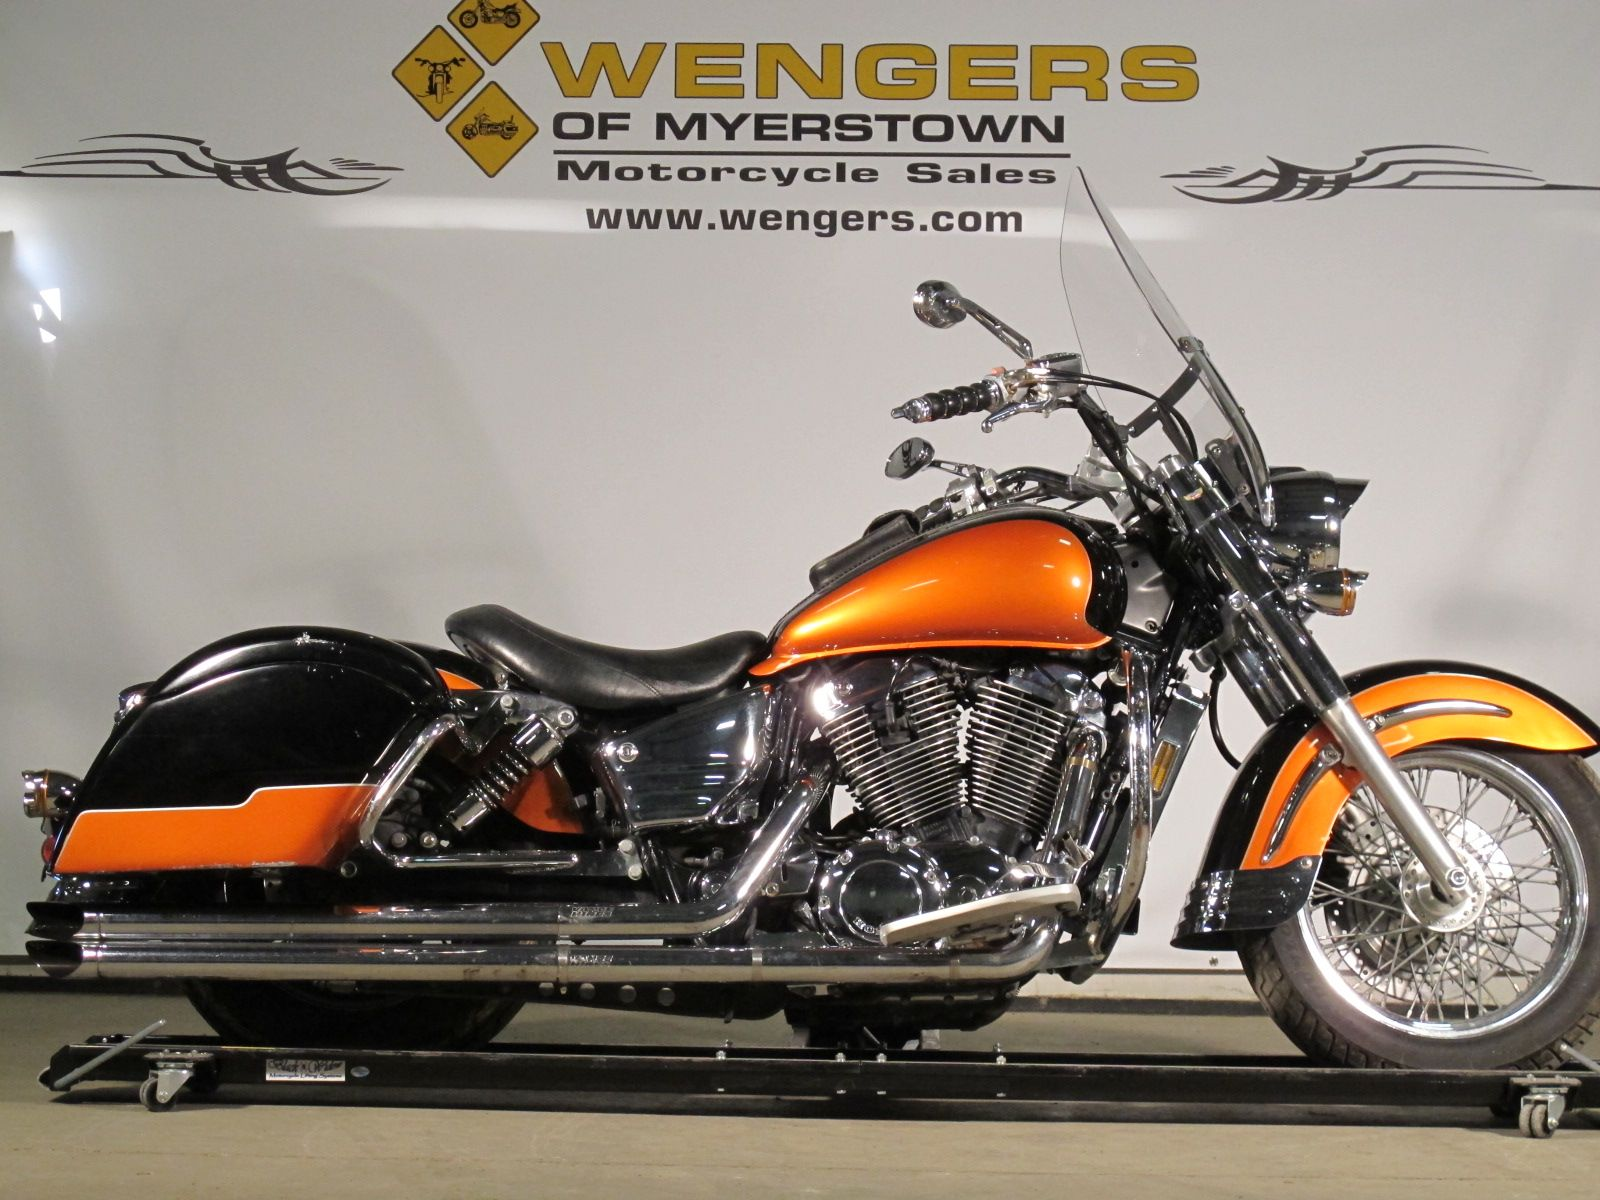 small resolution of 2002 honda shadow aero 1100 for sale at wengers of myerstown motorcycle sales only 4 799 sold